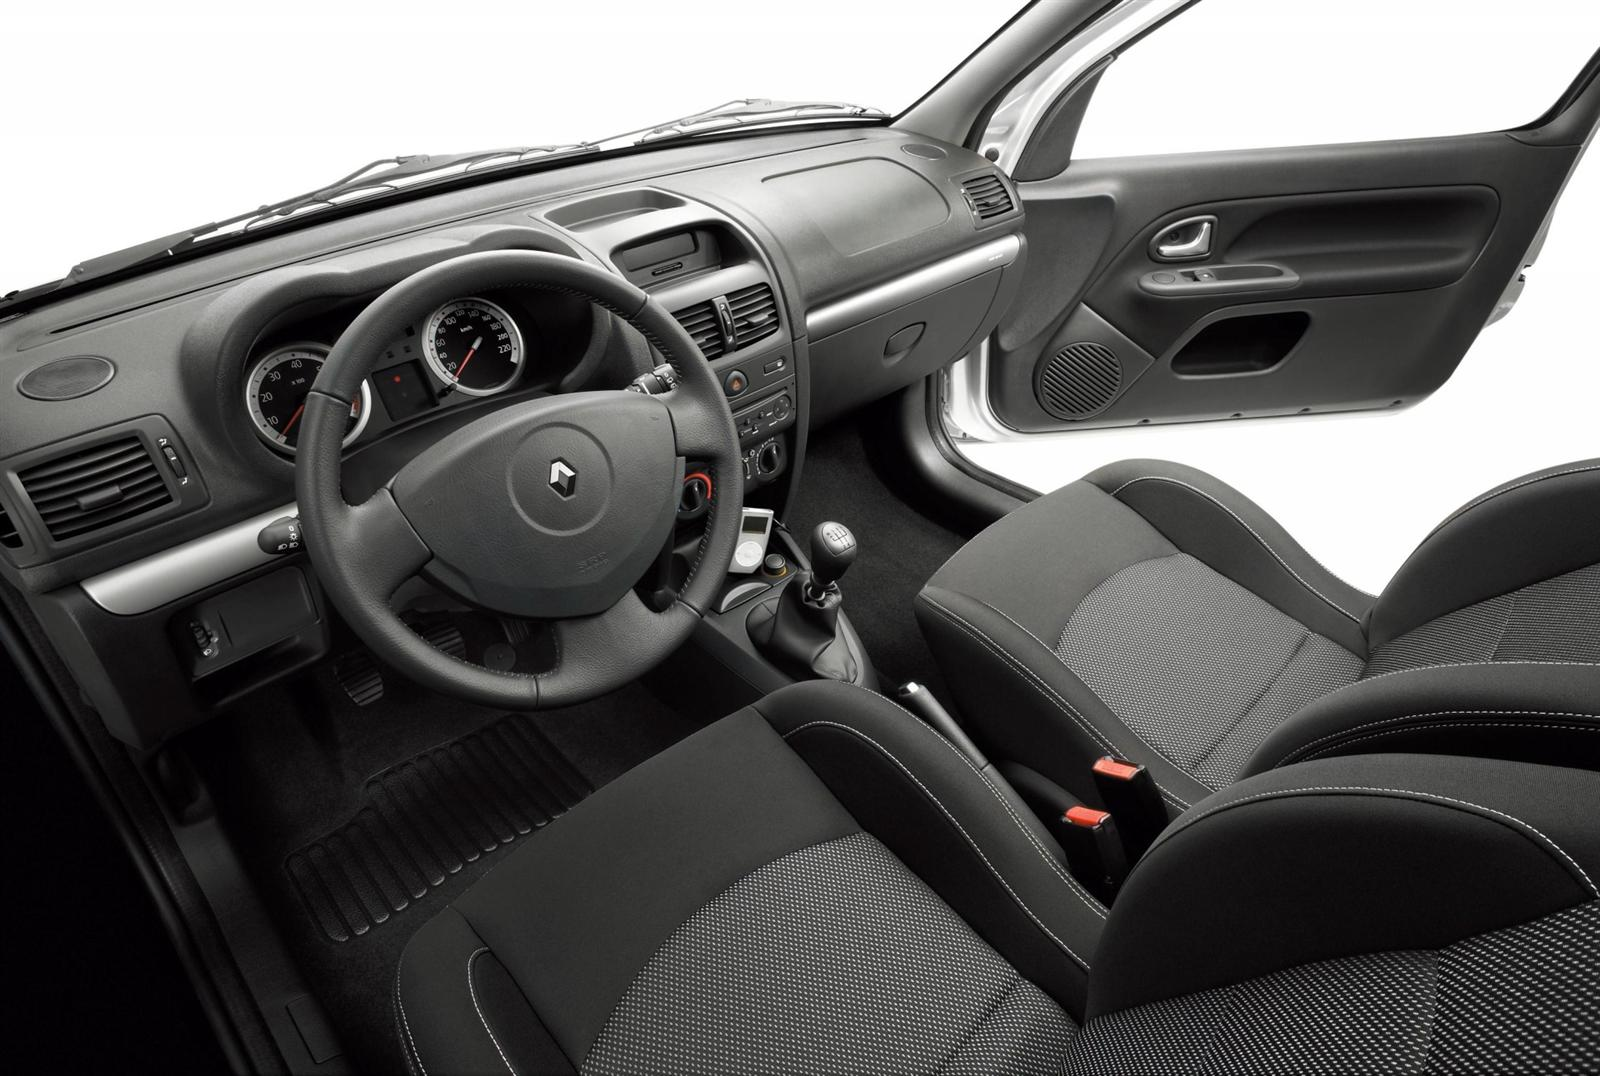 2009 renault clio campus image for Interieur 010